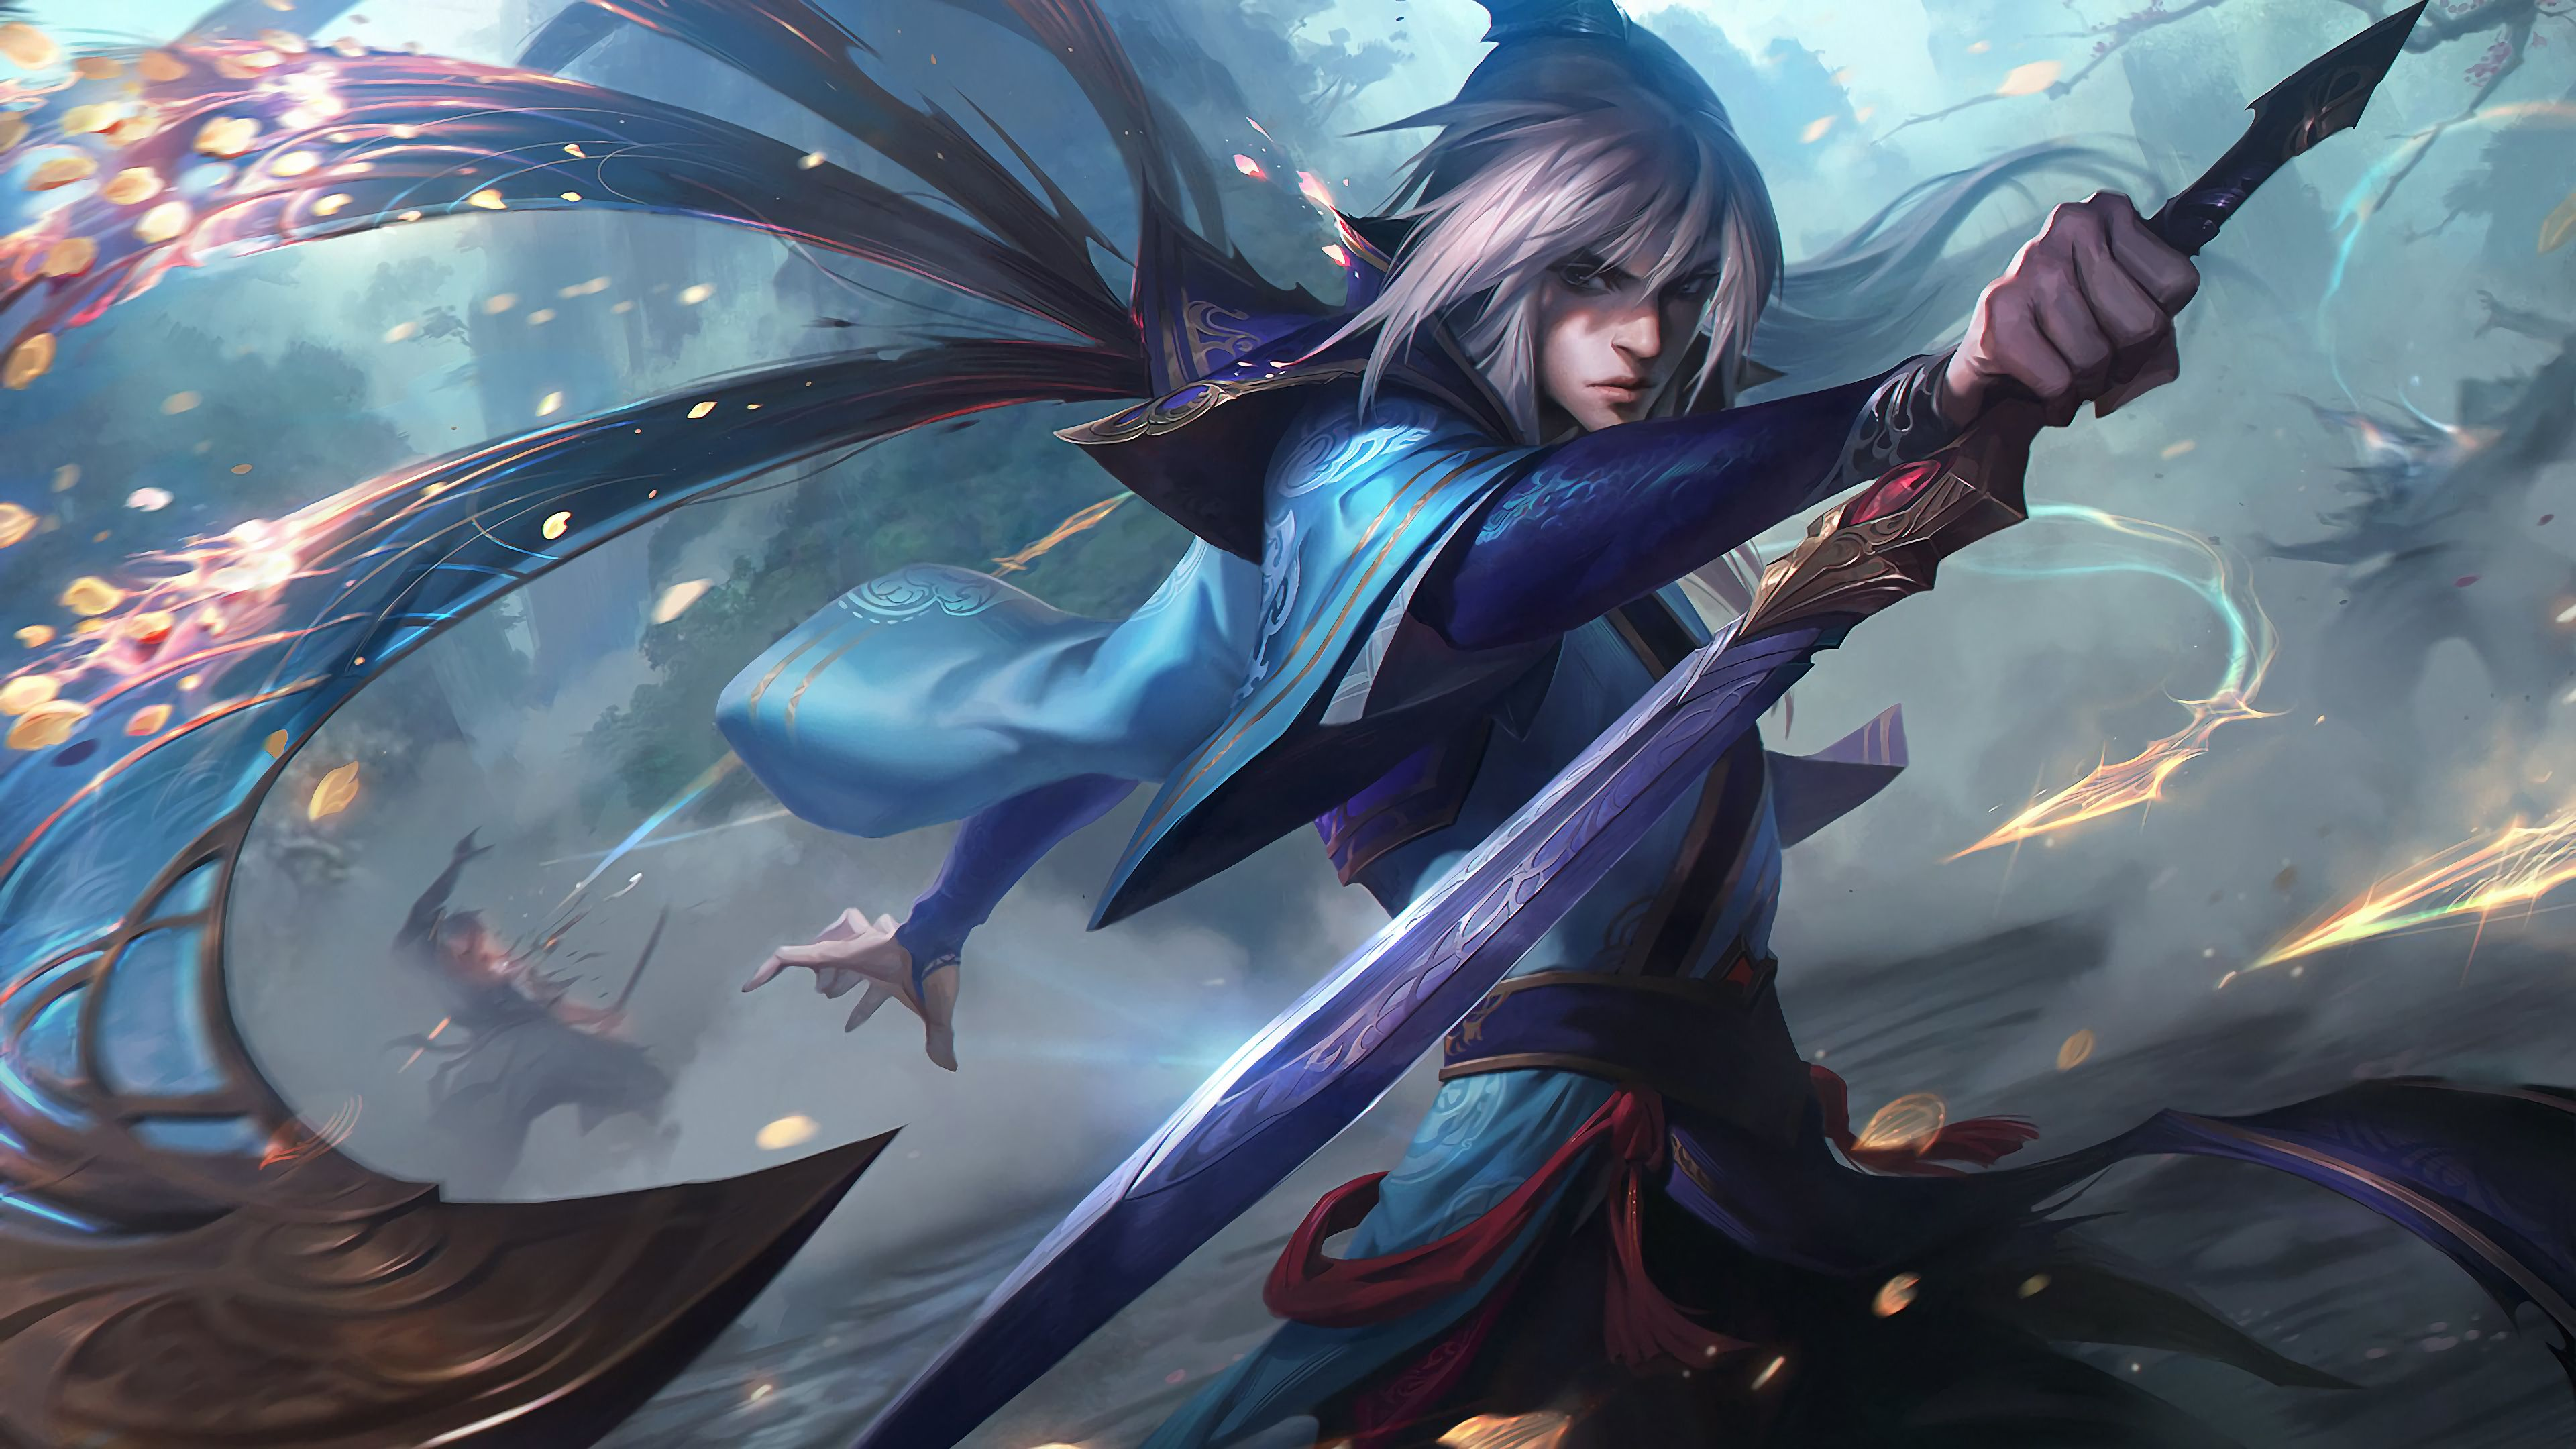 Talon League Of Legends 4k League Of Legends Wallpapers Hd Wallpapers Games Wallpapers League Of Legends Talon League Of Legends Characters League Of Legends